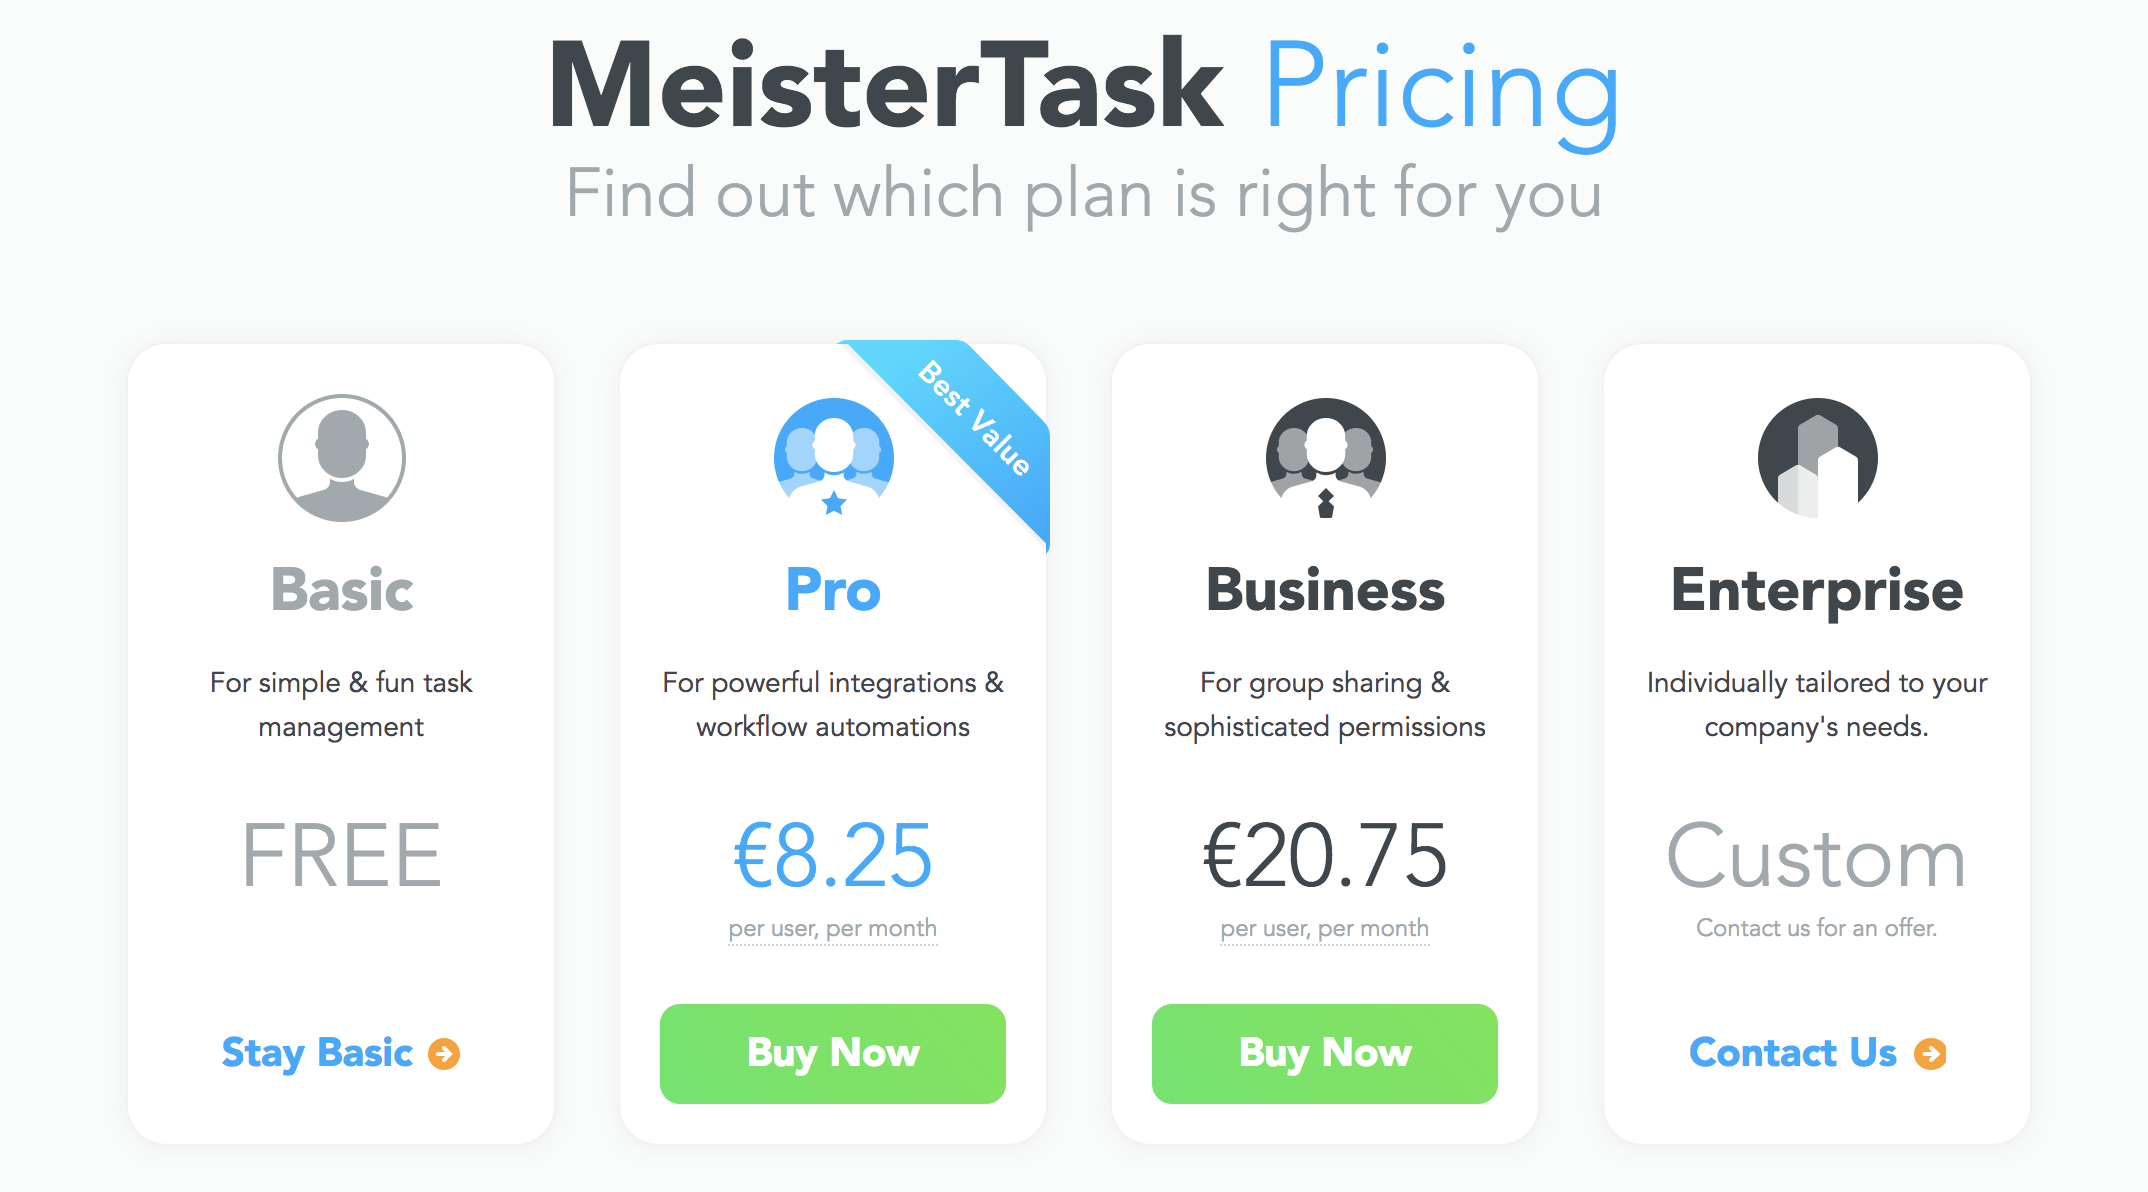 MeisterTask Pricing